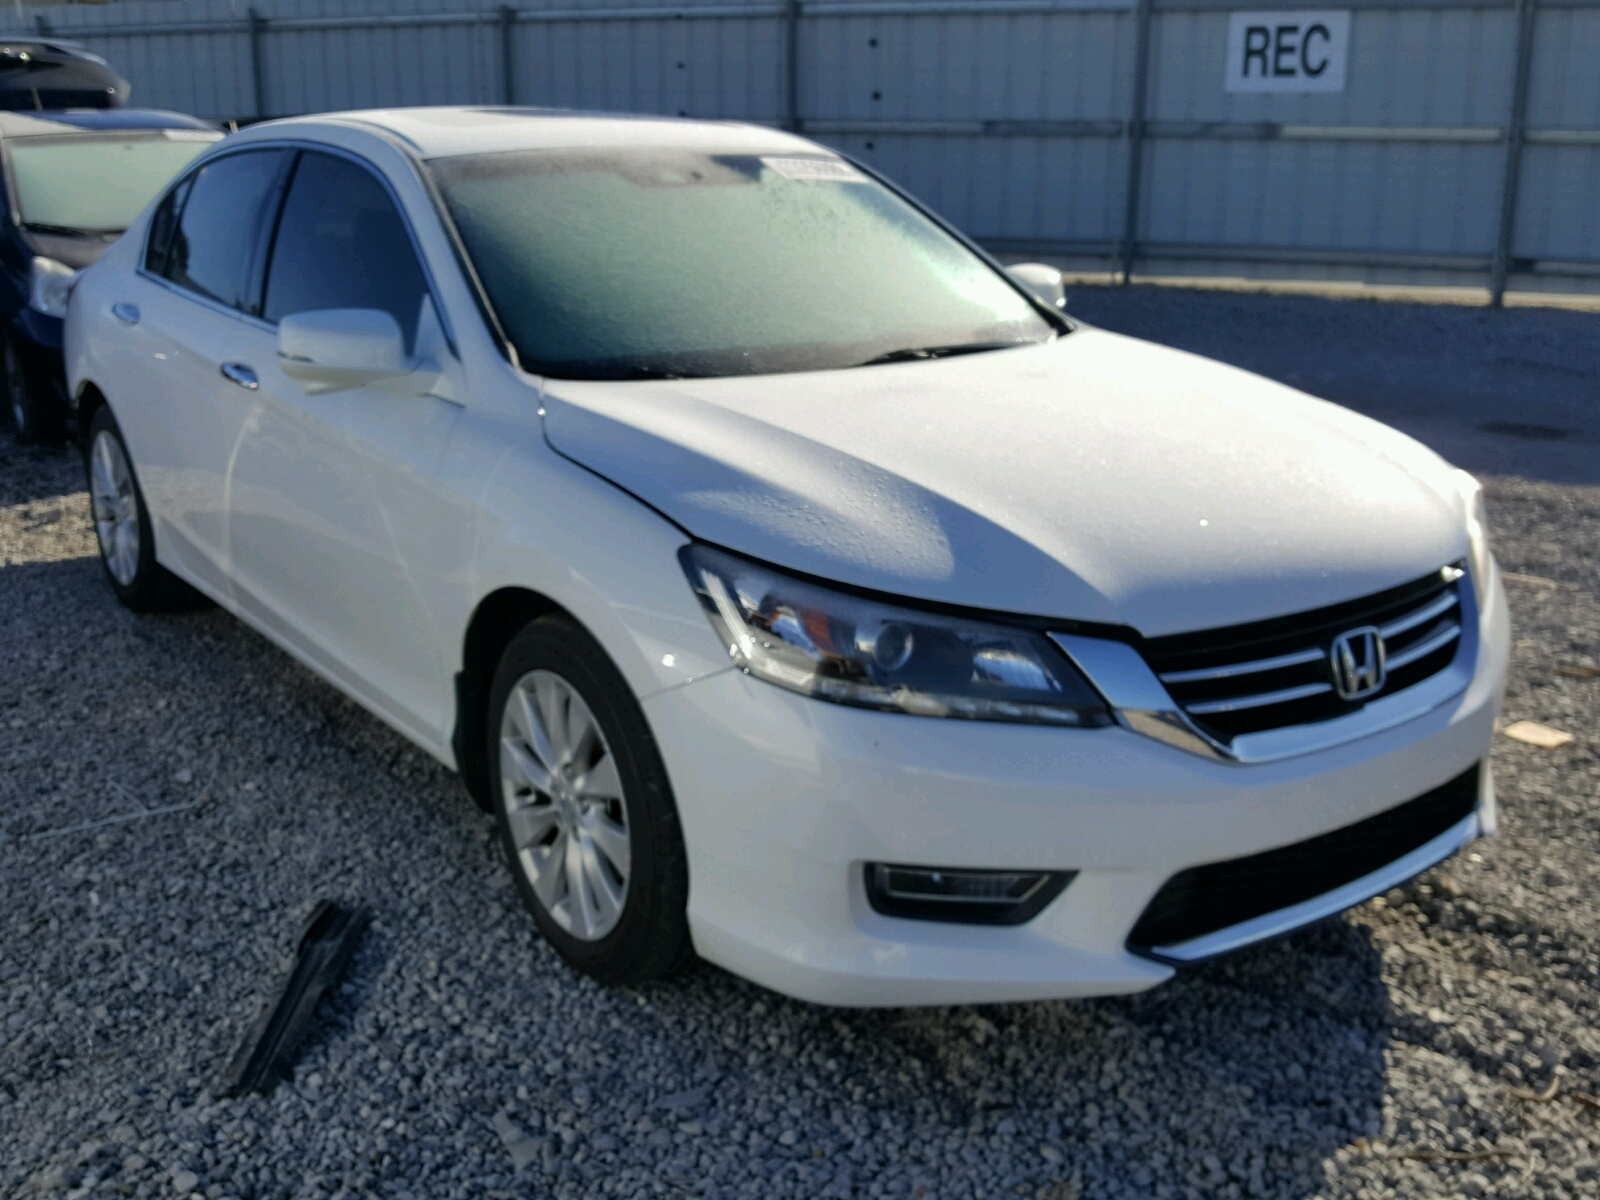 Auto Auction Ended On Vin 2hges16513h571653 2003 Honda